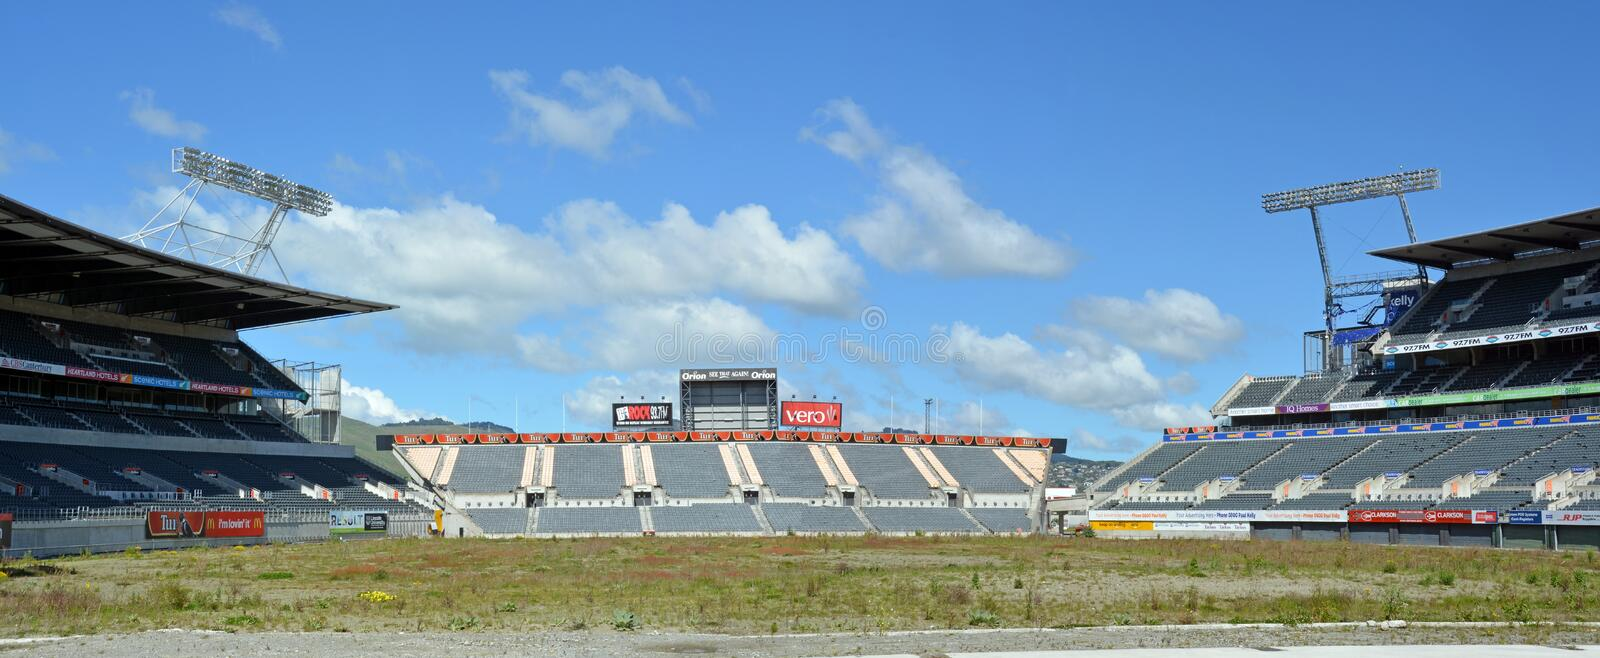 Lancaster Park Panorama - A Sad Picture of Dereliction. royalty free stock image